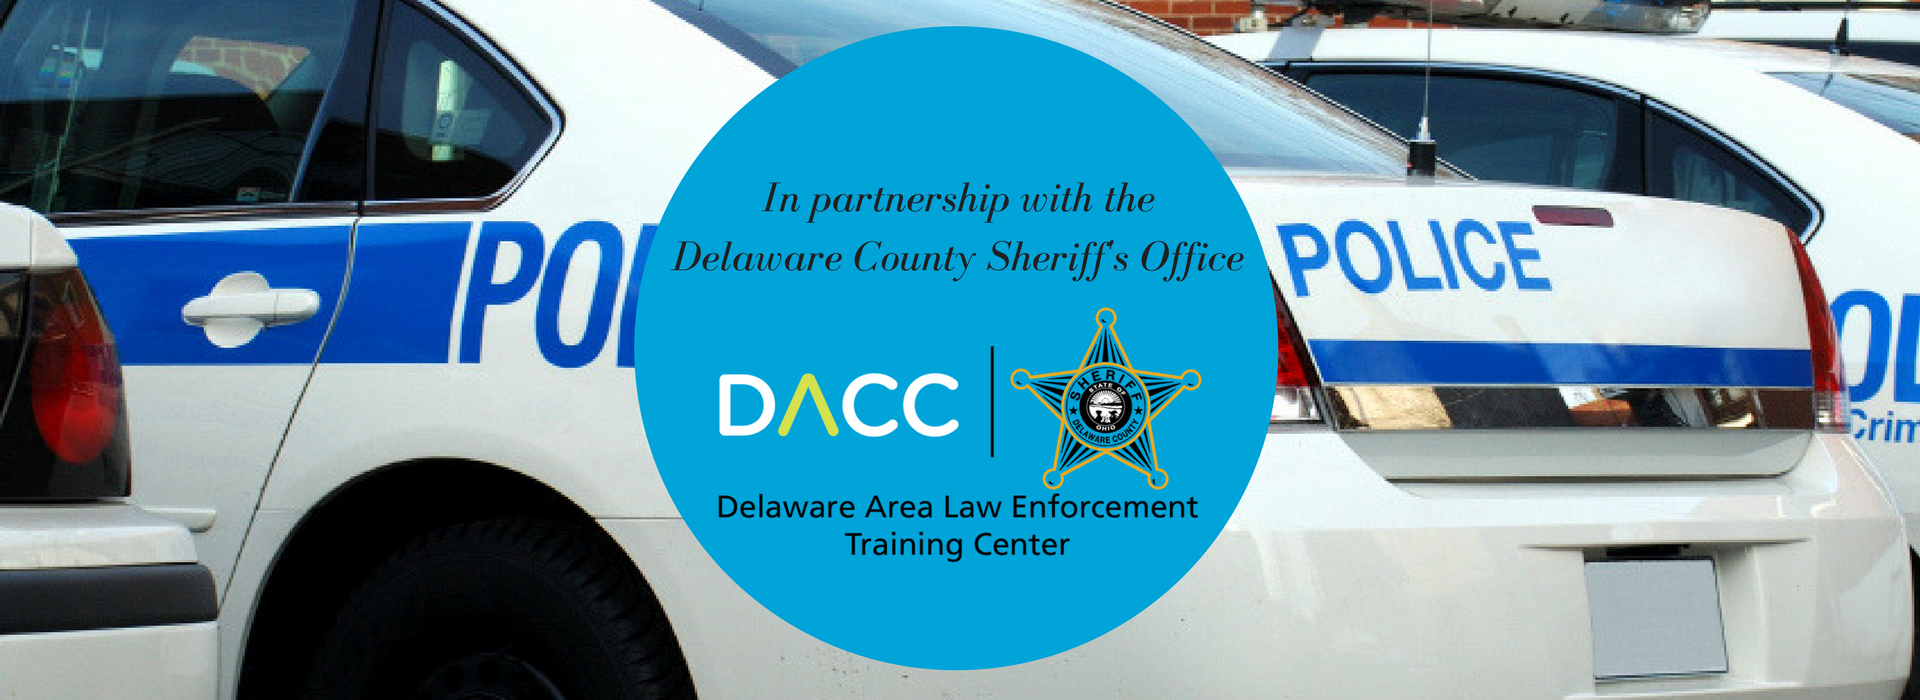 In partnership with Delaware County Sheriff's Office